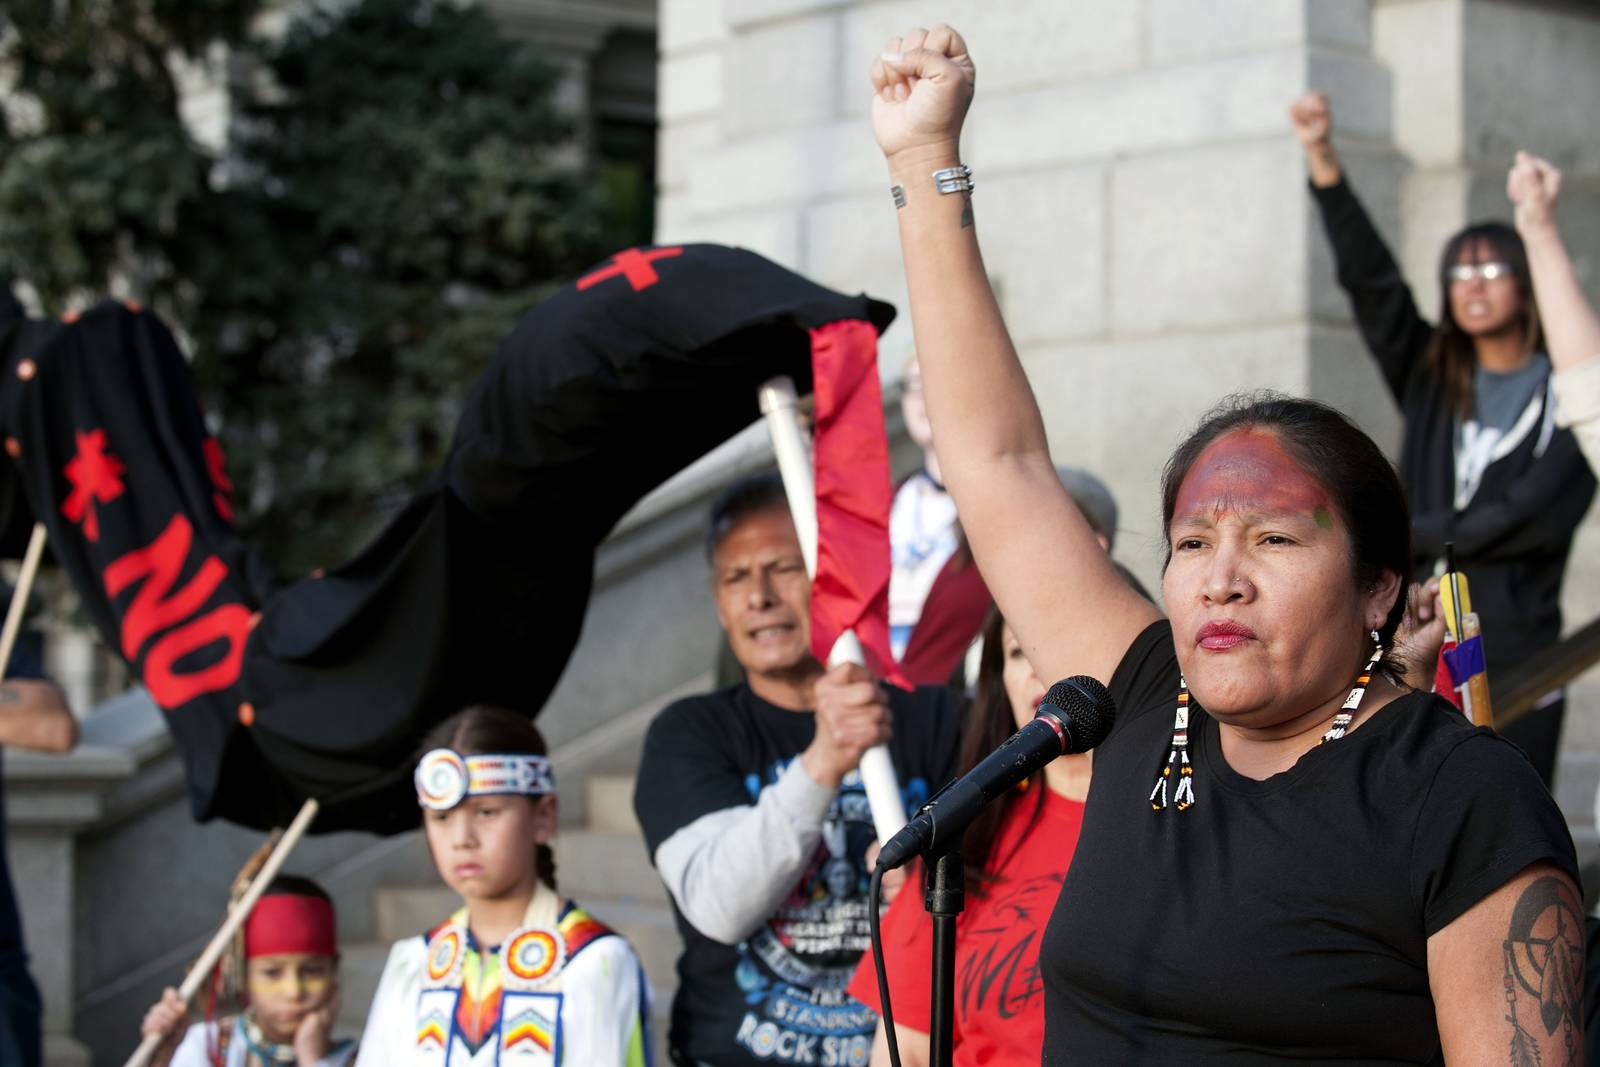 Native Americans have led the latest protest against Keystone XL